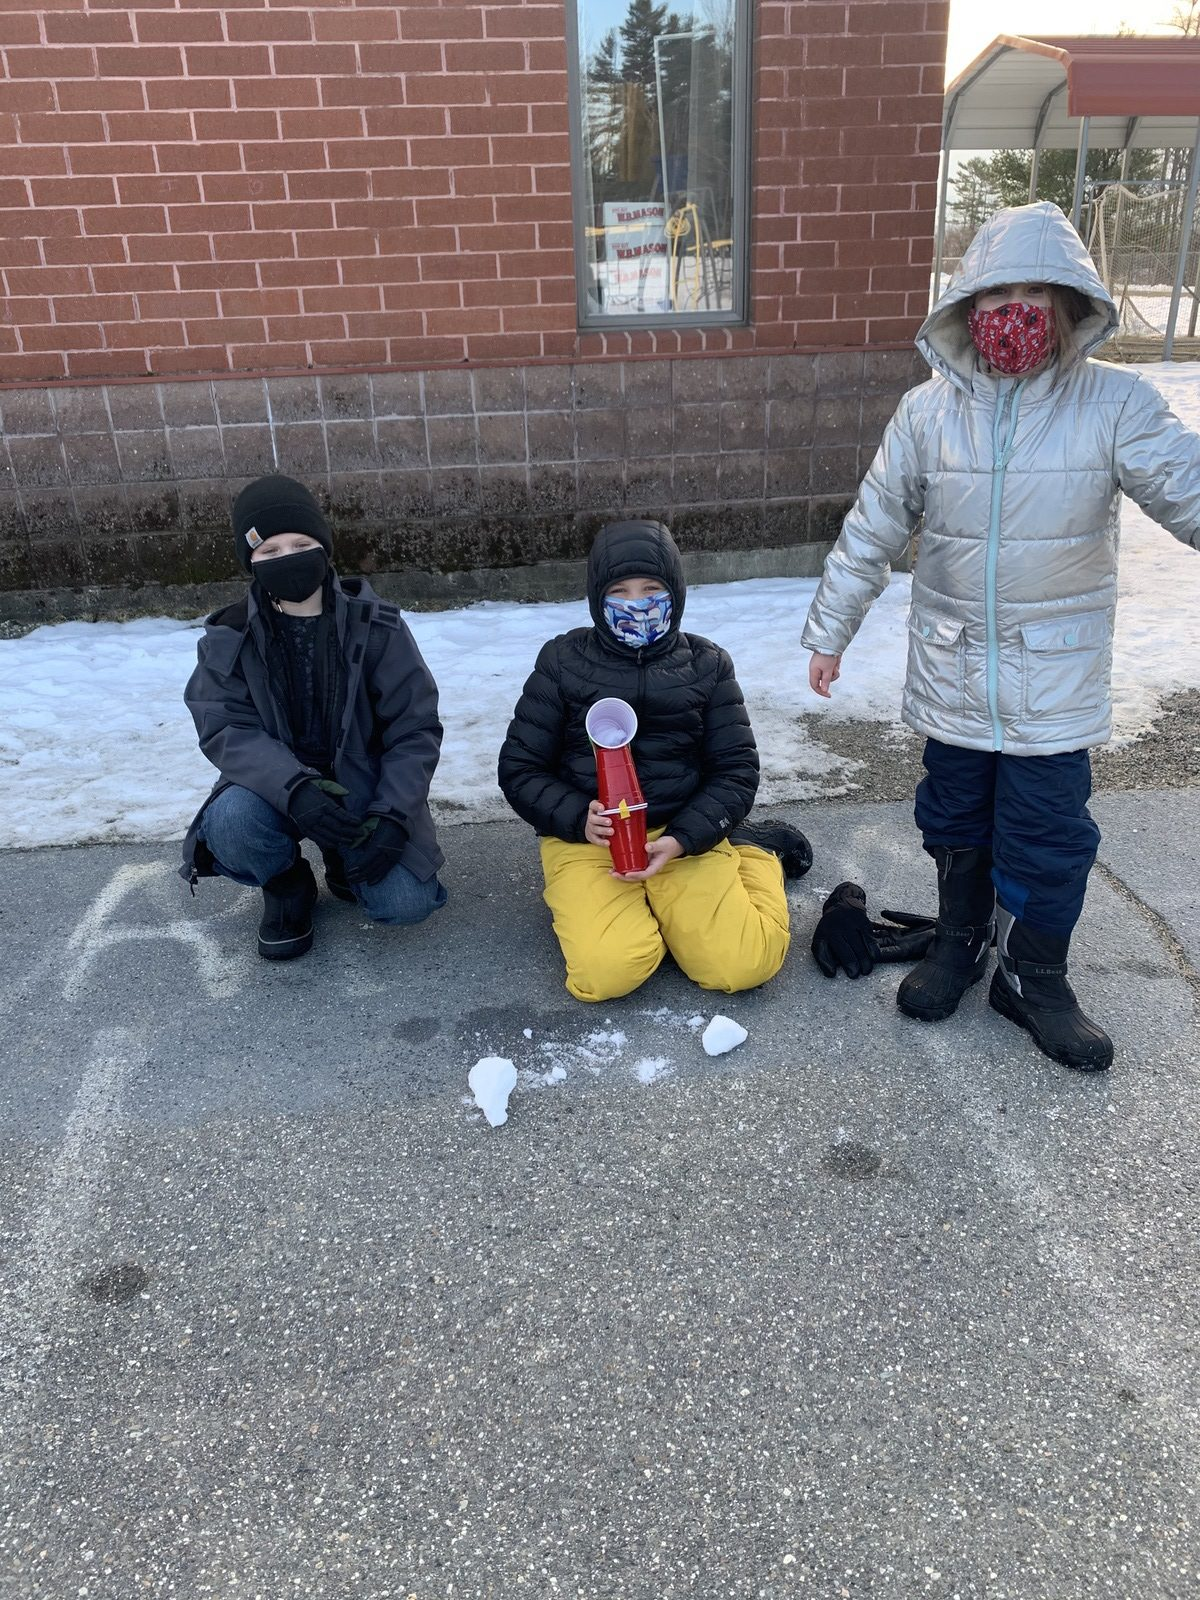 Week 1 3 4th Grade Miles Lane Entery 2 Winter Games 2021 Moment of the Week